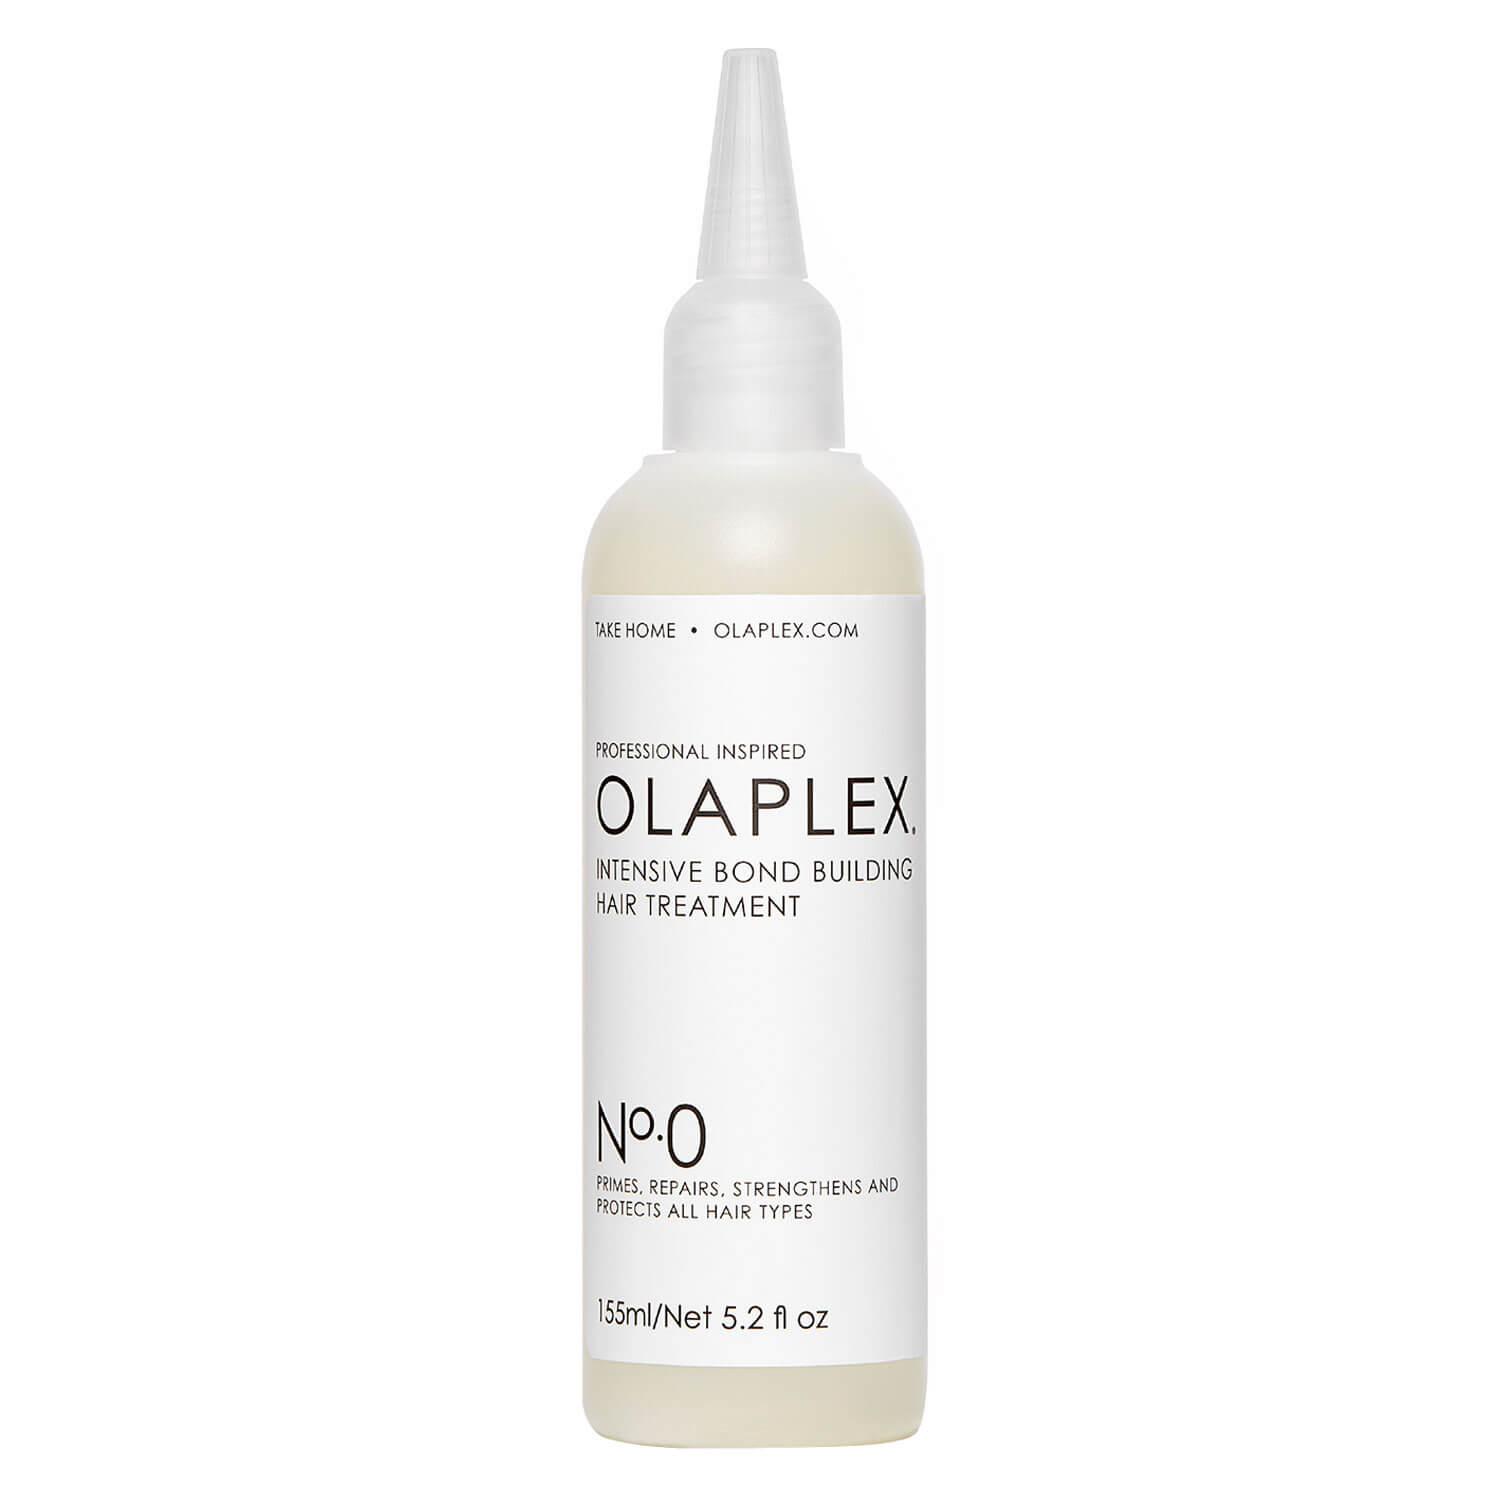 Olaplex - Intensive Bond Building Hair Treatment No. 0 - 155ml